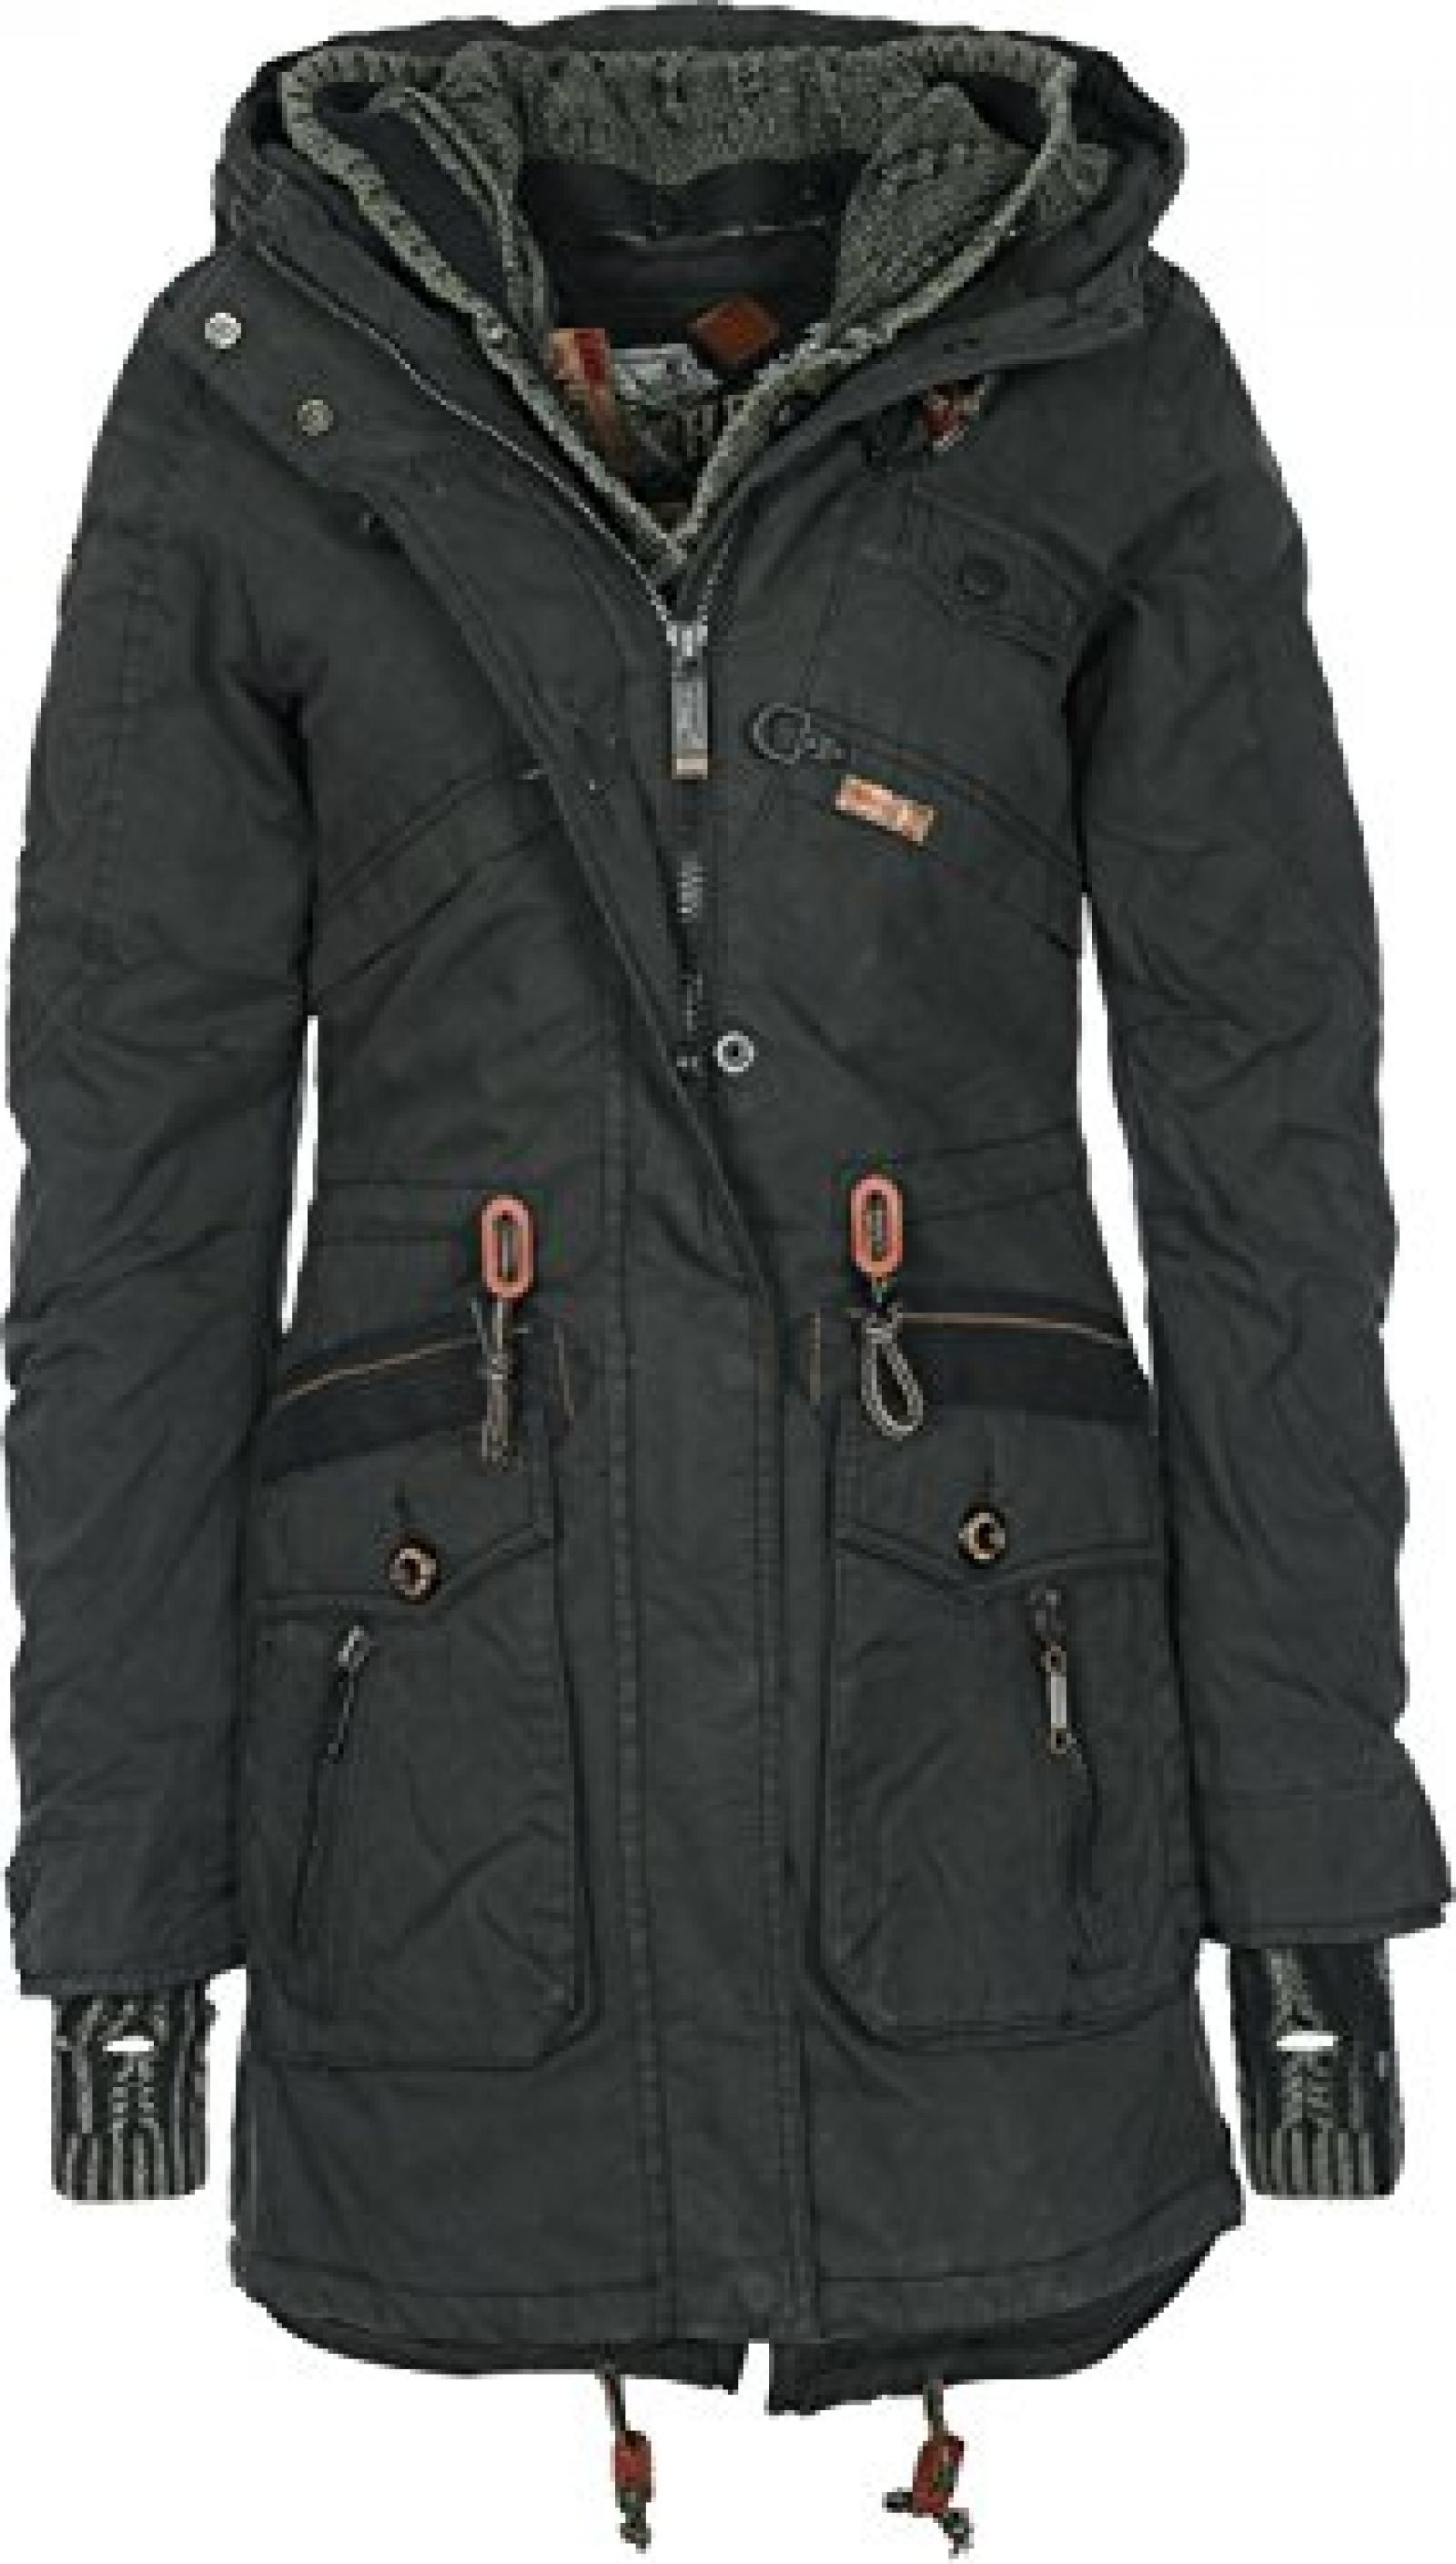 Khujo Parka Women - JEDDA WITH INNER JACKET & CUFFS - Black